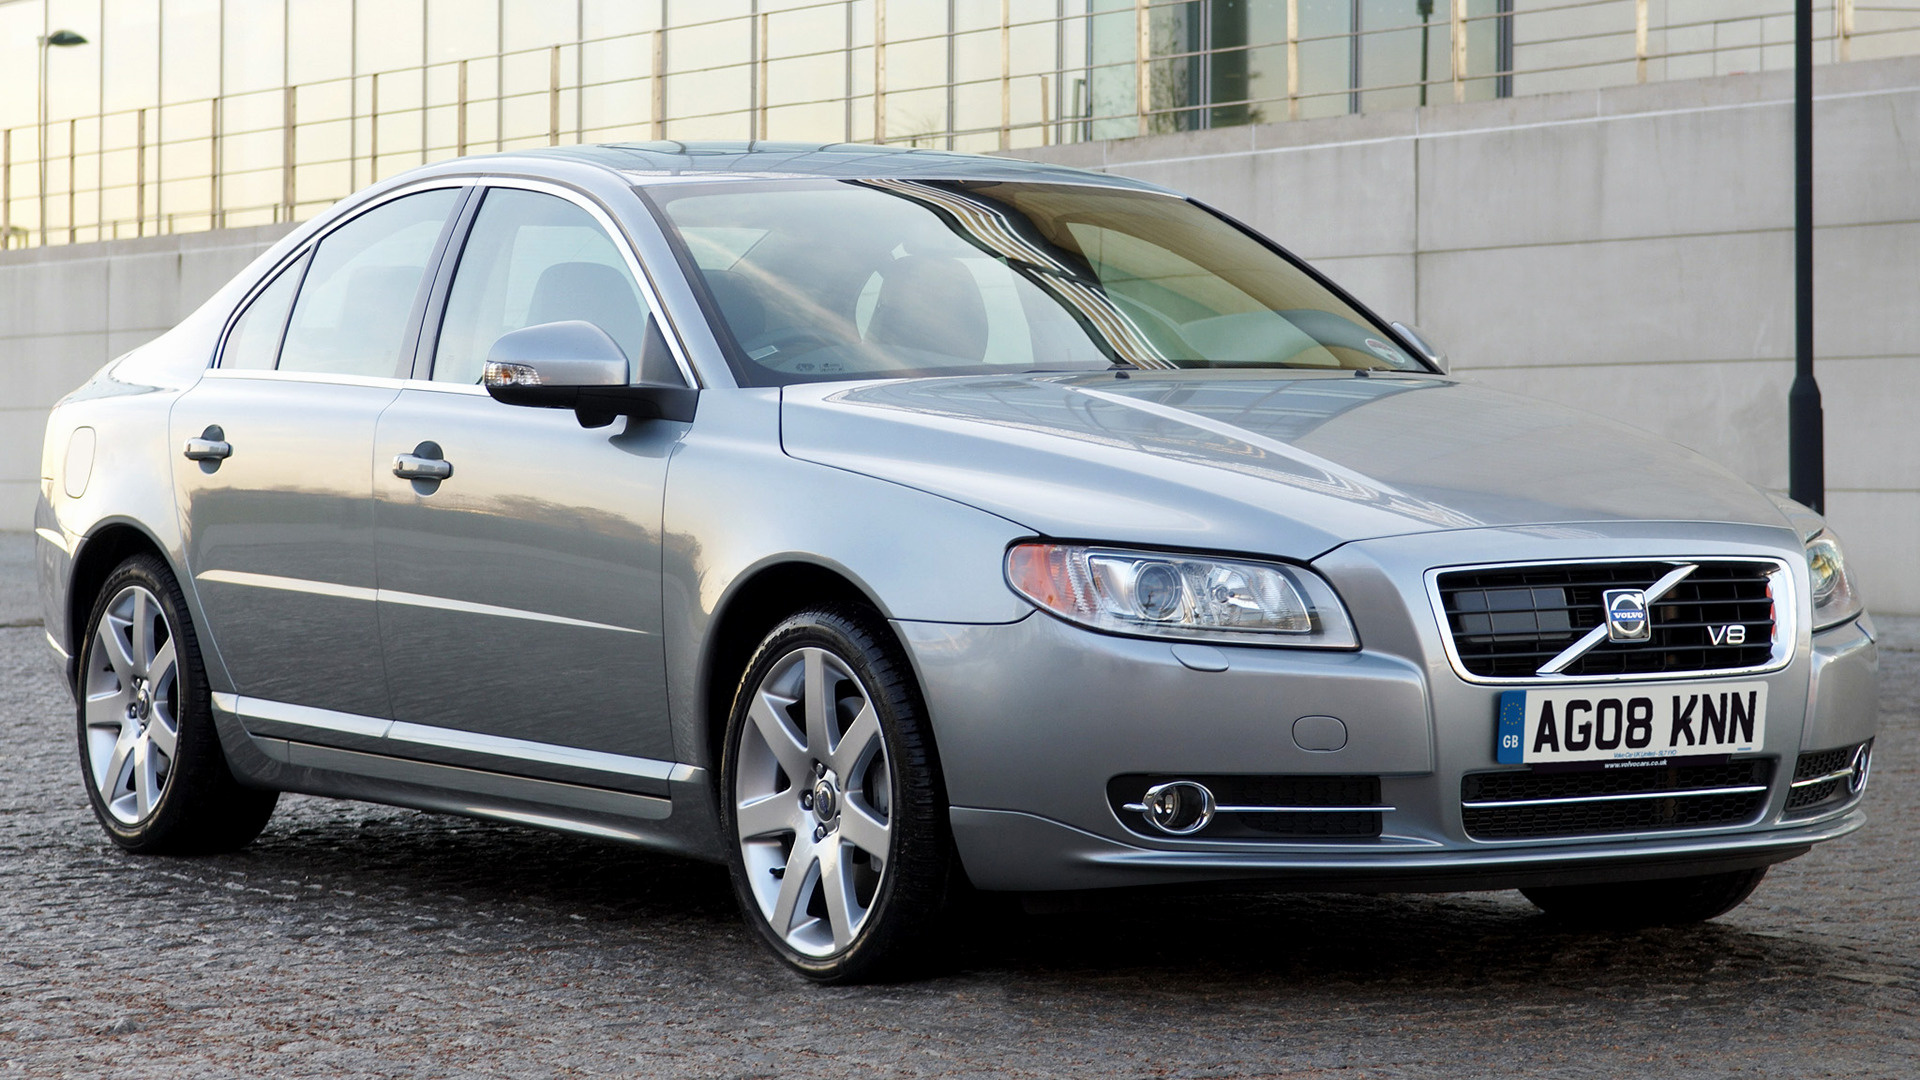 2007 volvo s80 v8 uk wallpapers and hd images car pixel. Black Bedroom Furniture Sets. Home Design Ideas